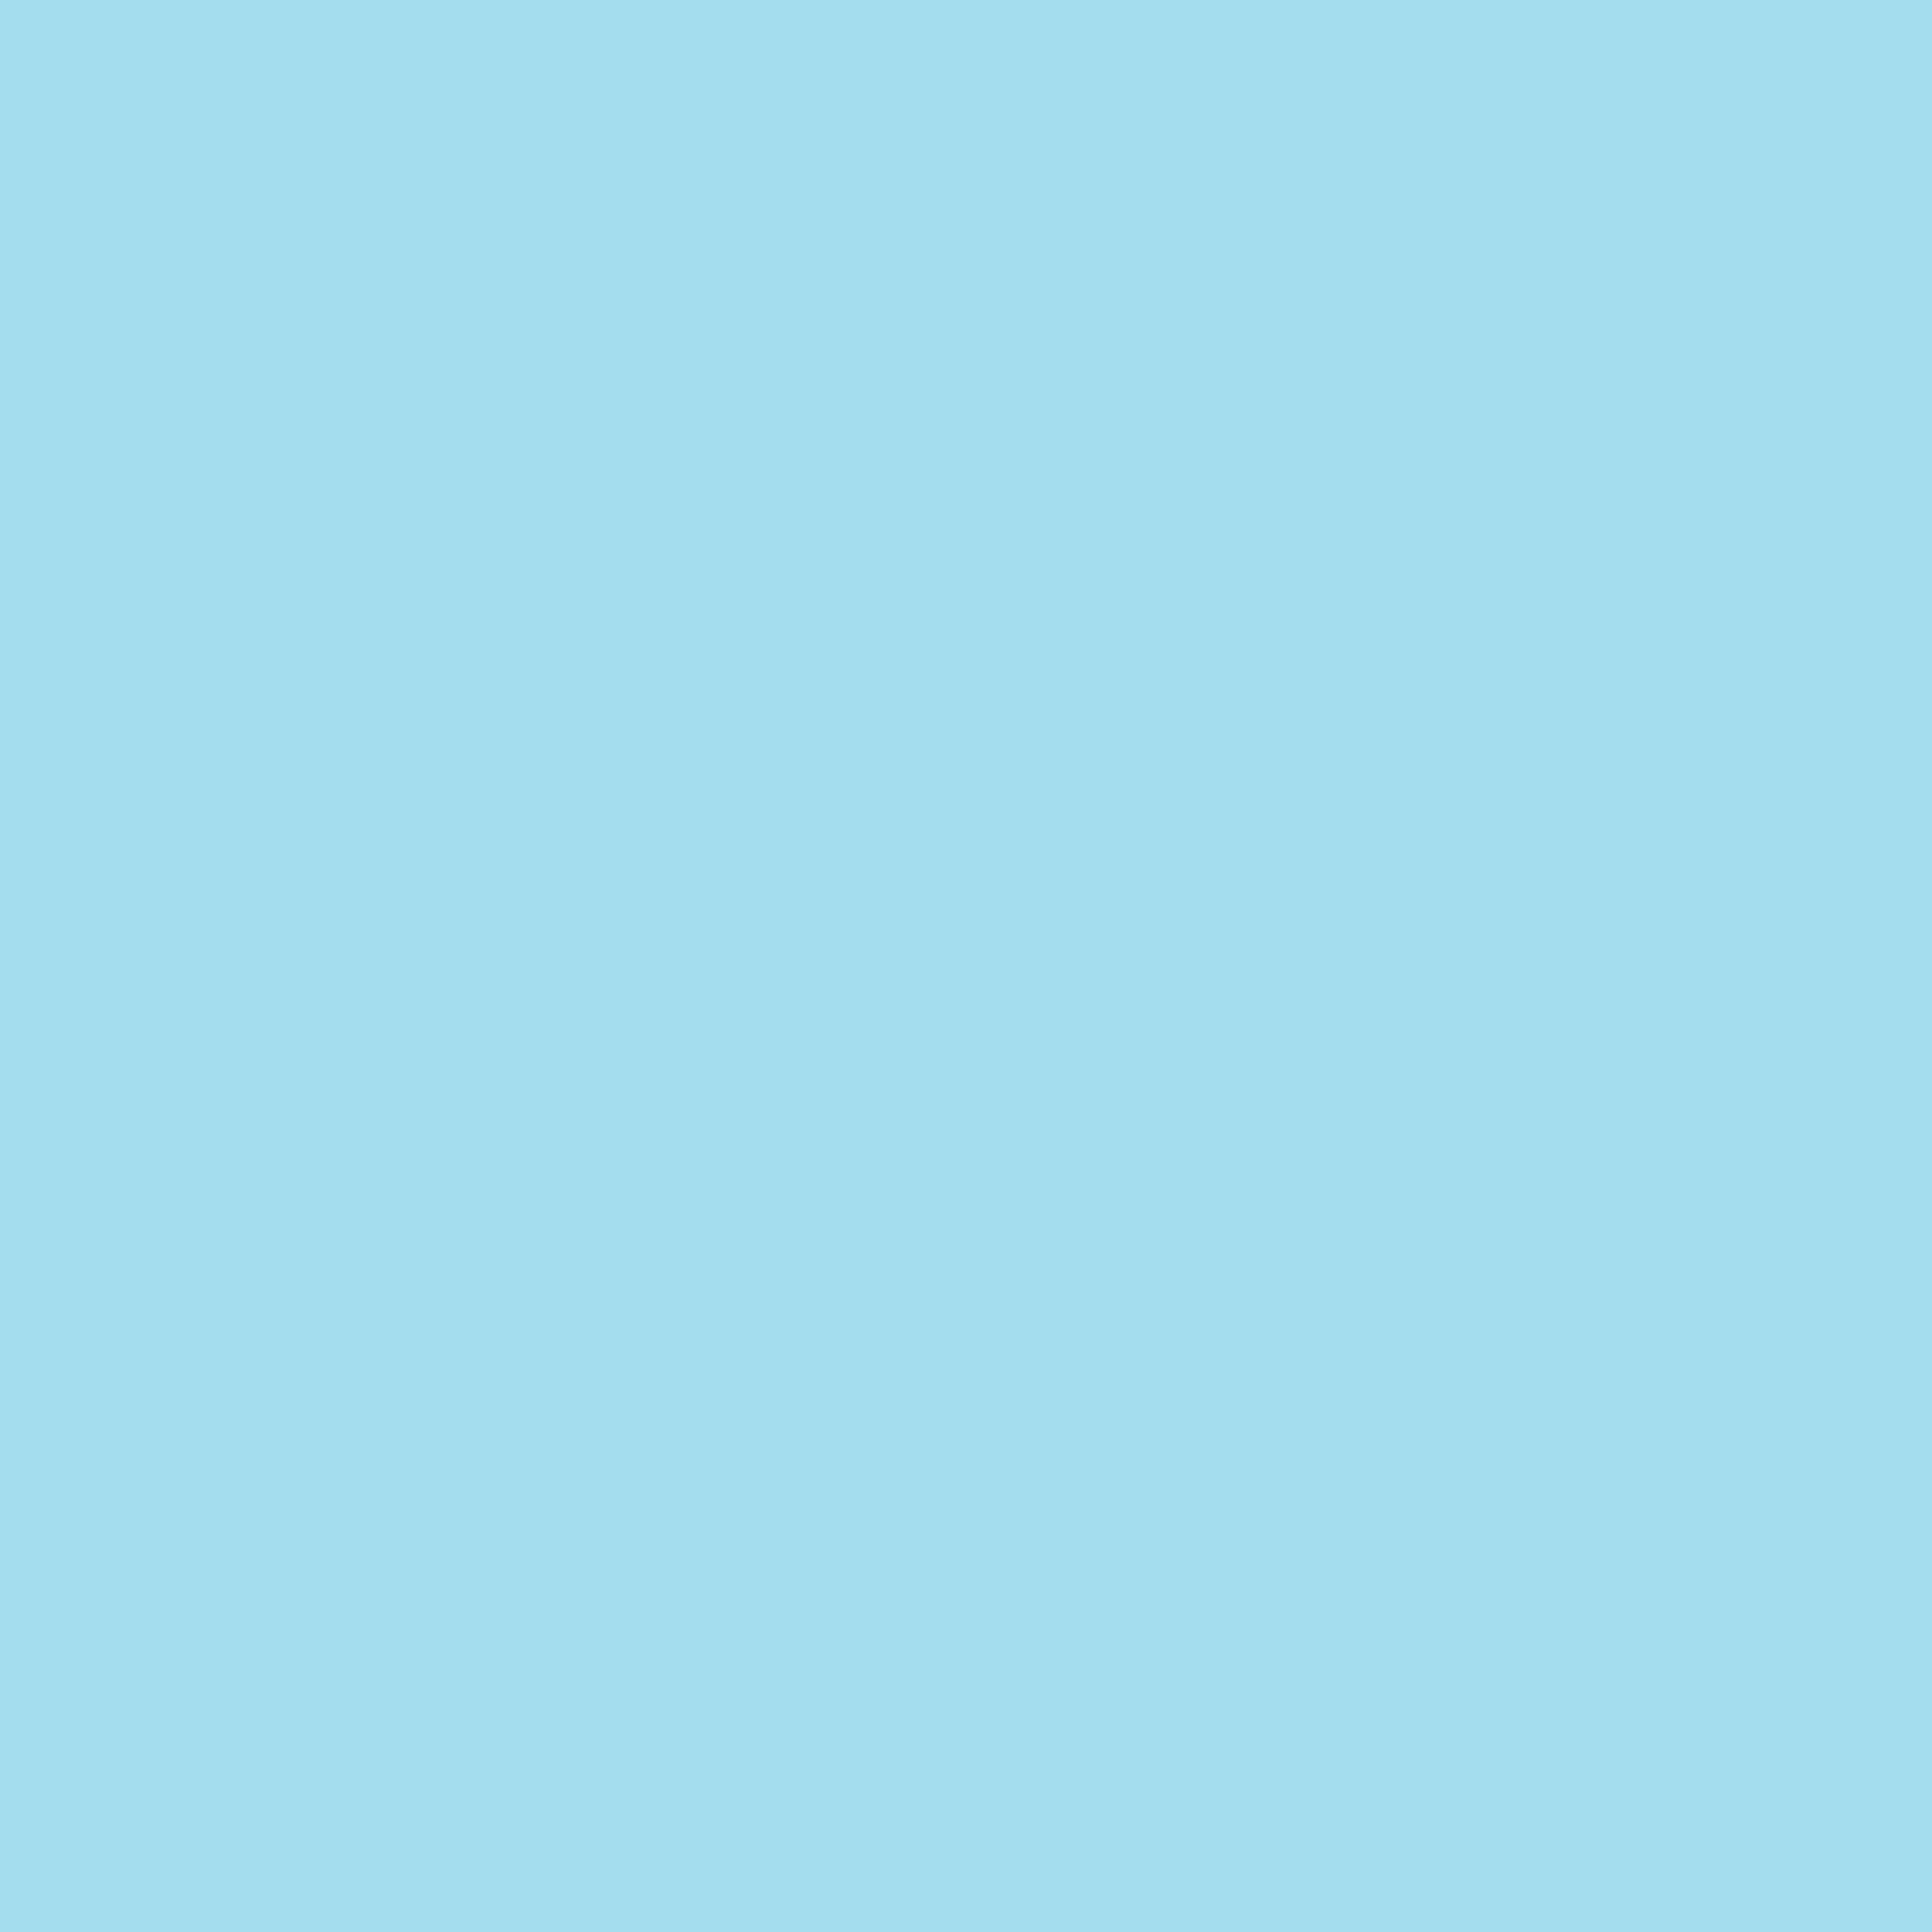 3600x3600 Non-photo Blue Solid Color Background